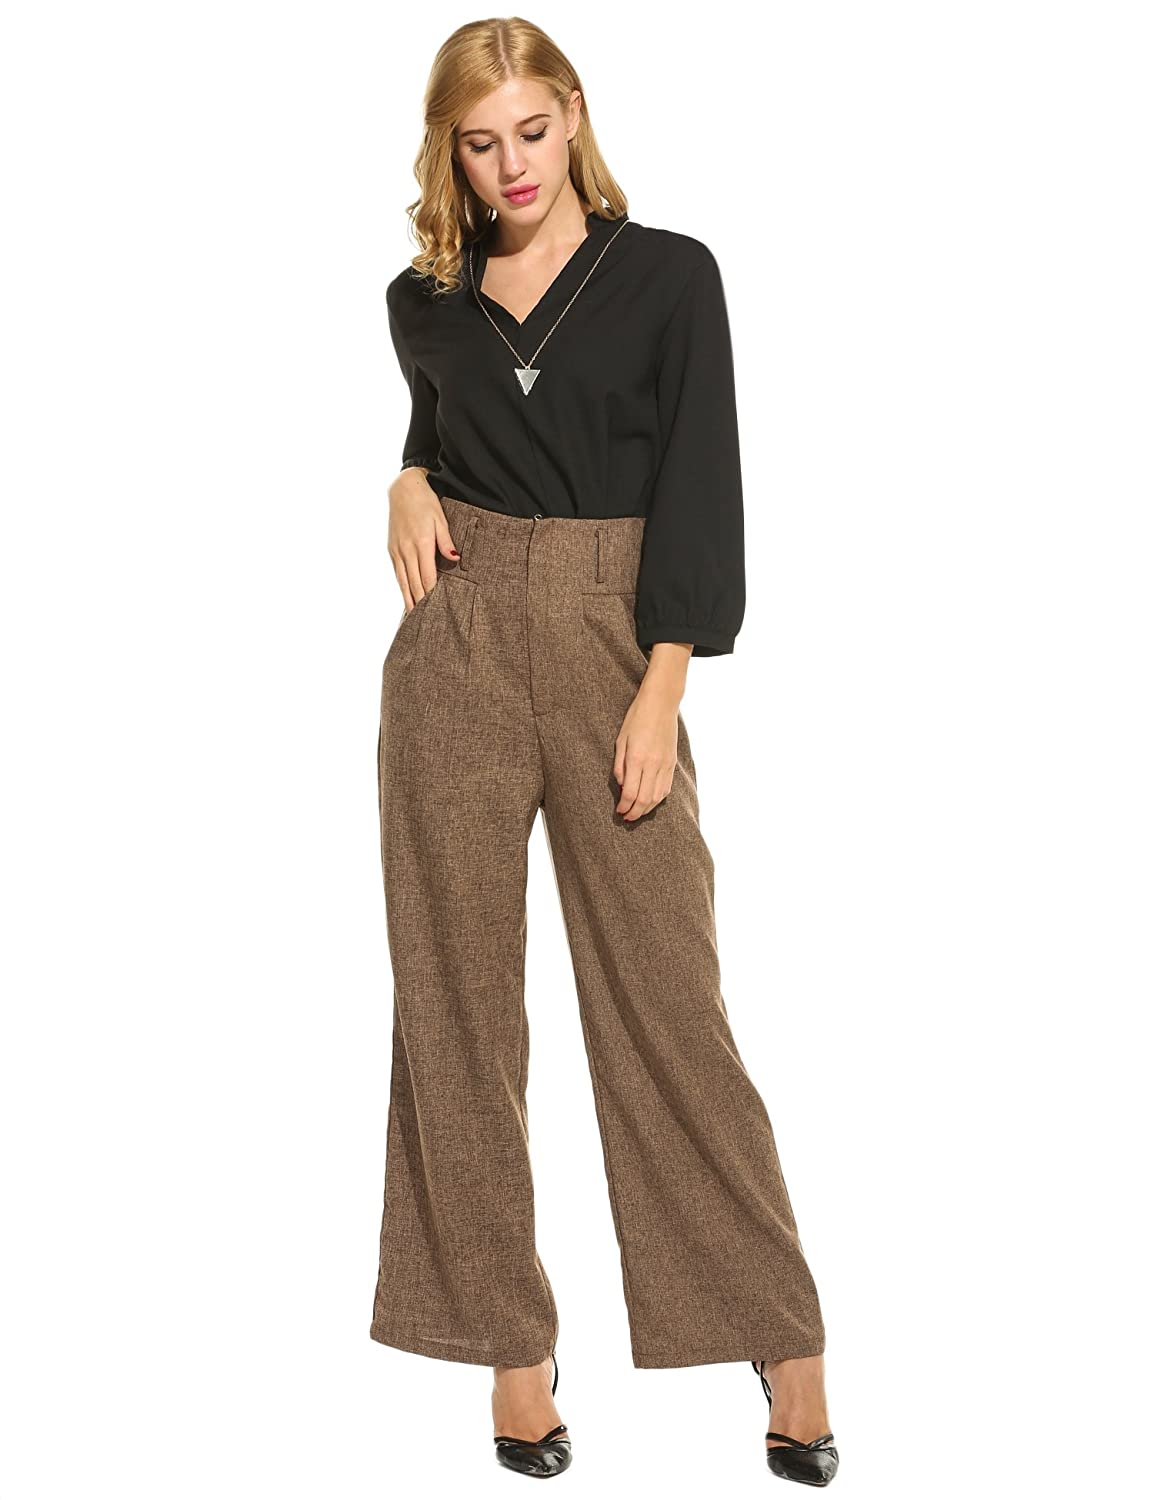 1930s Women's Pants and Beach Pajamas Zeagoo Women Casual Superline Wide Flare Leg High Waist Zipper Solid Long Pants $25.99 AT vintagedancer.com